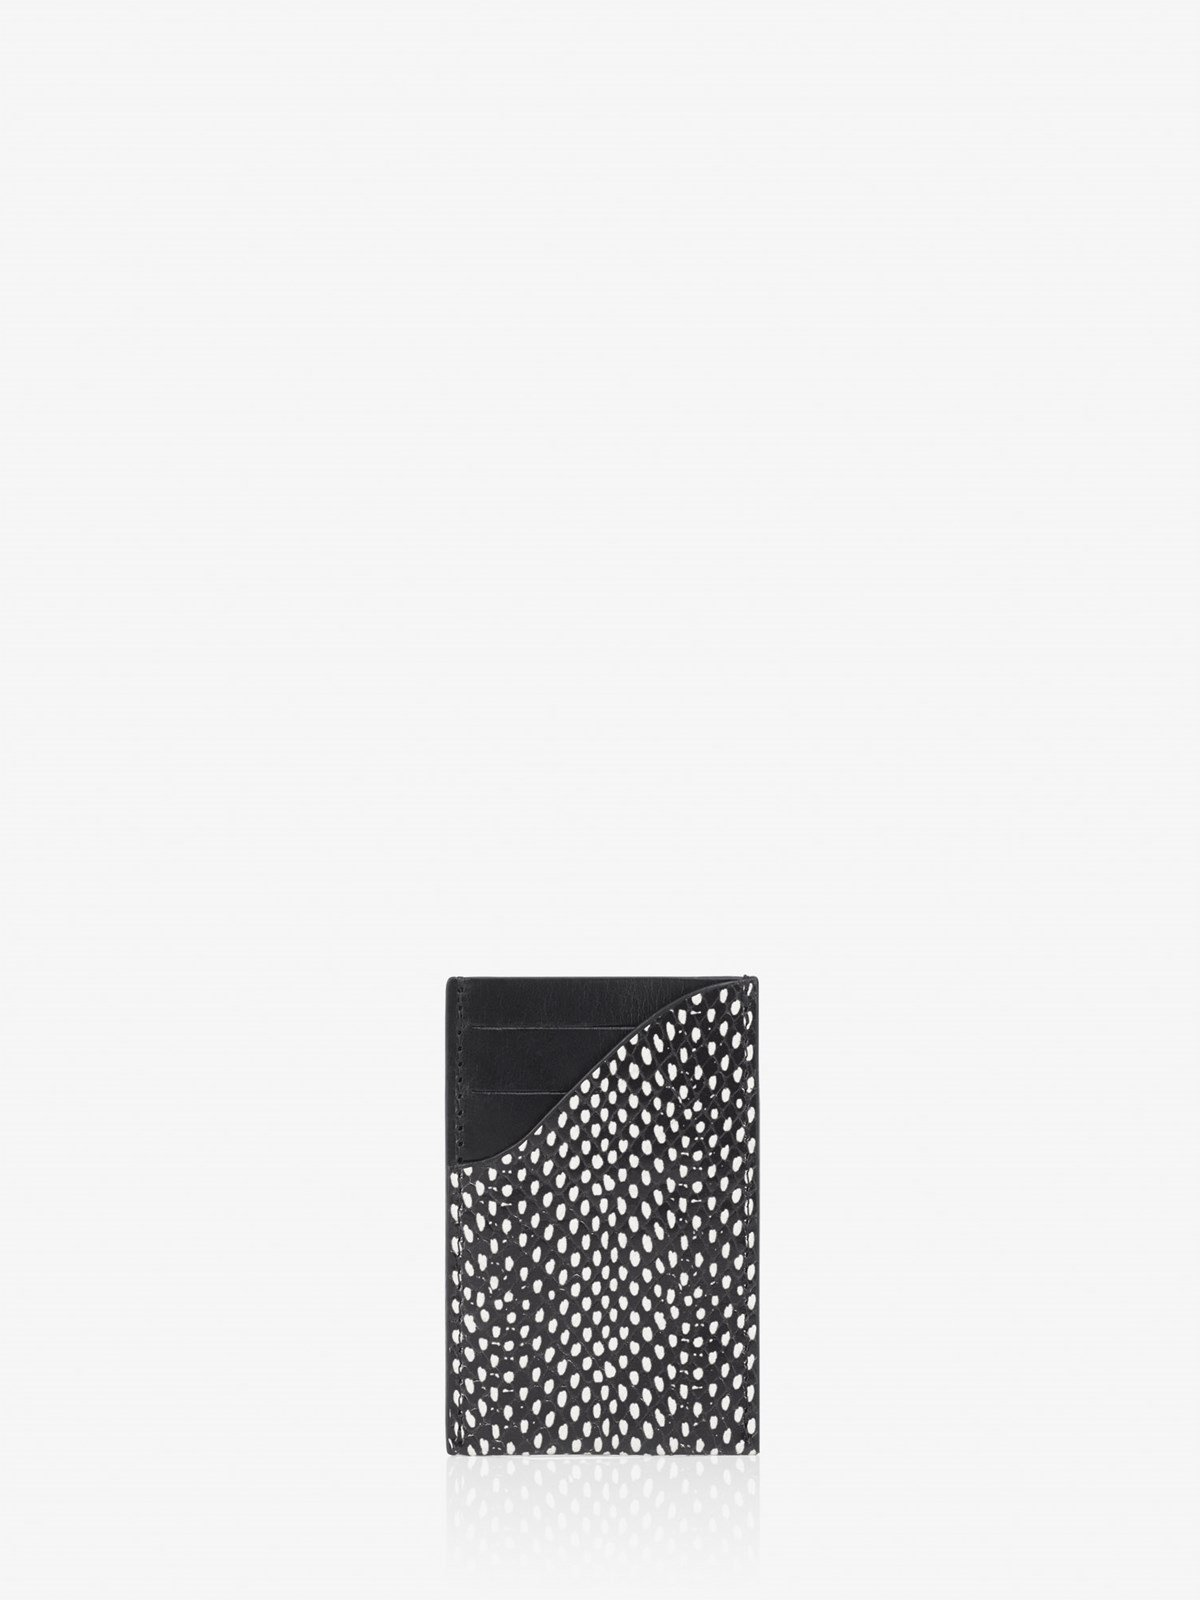 Elba Black White Dot Card holder